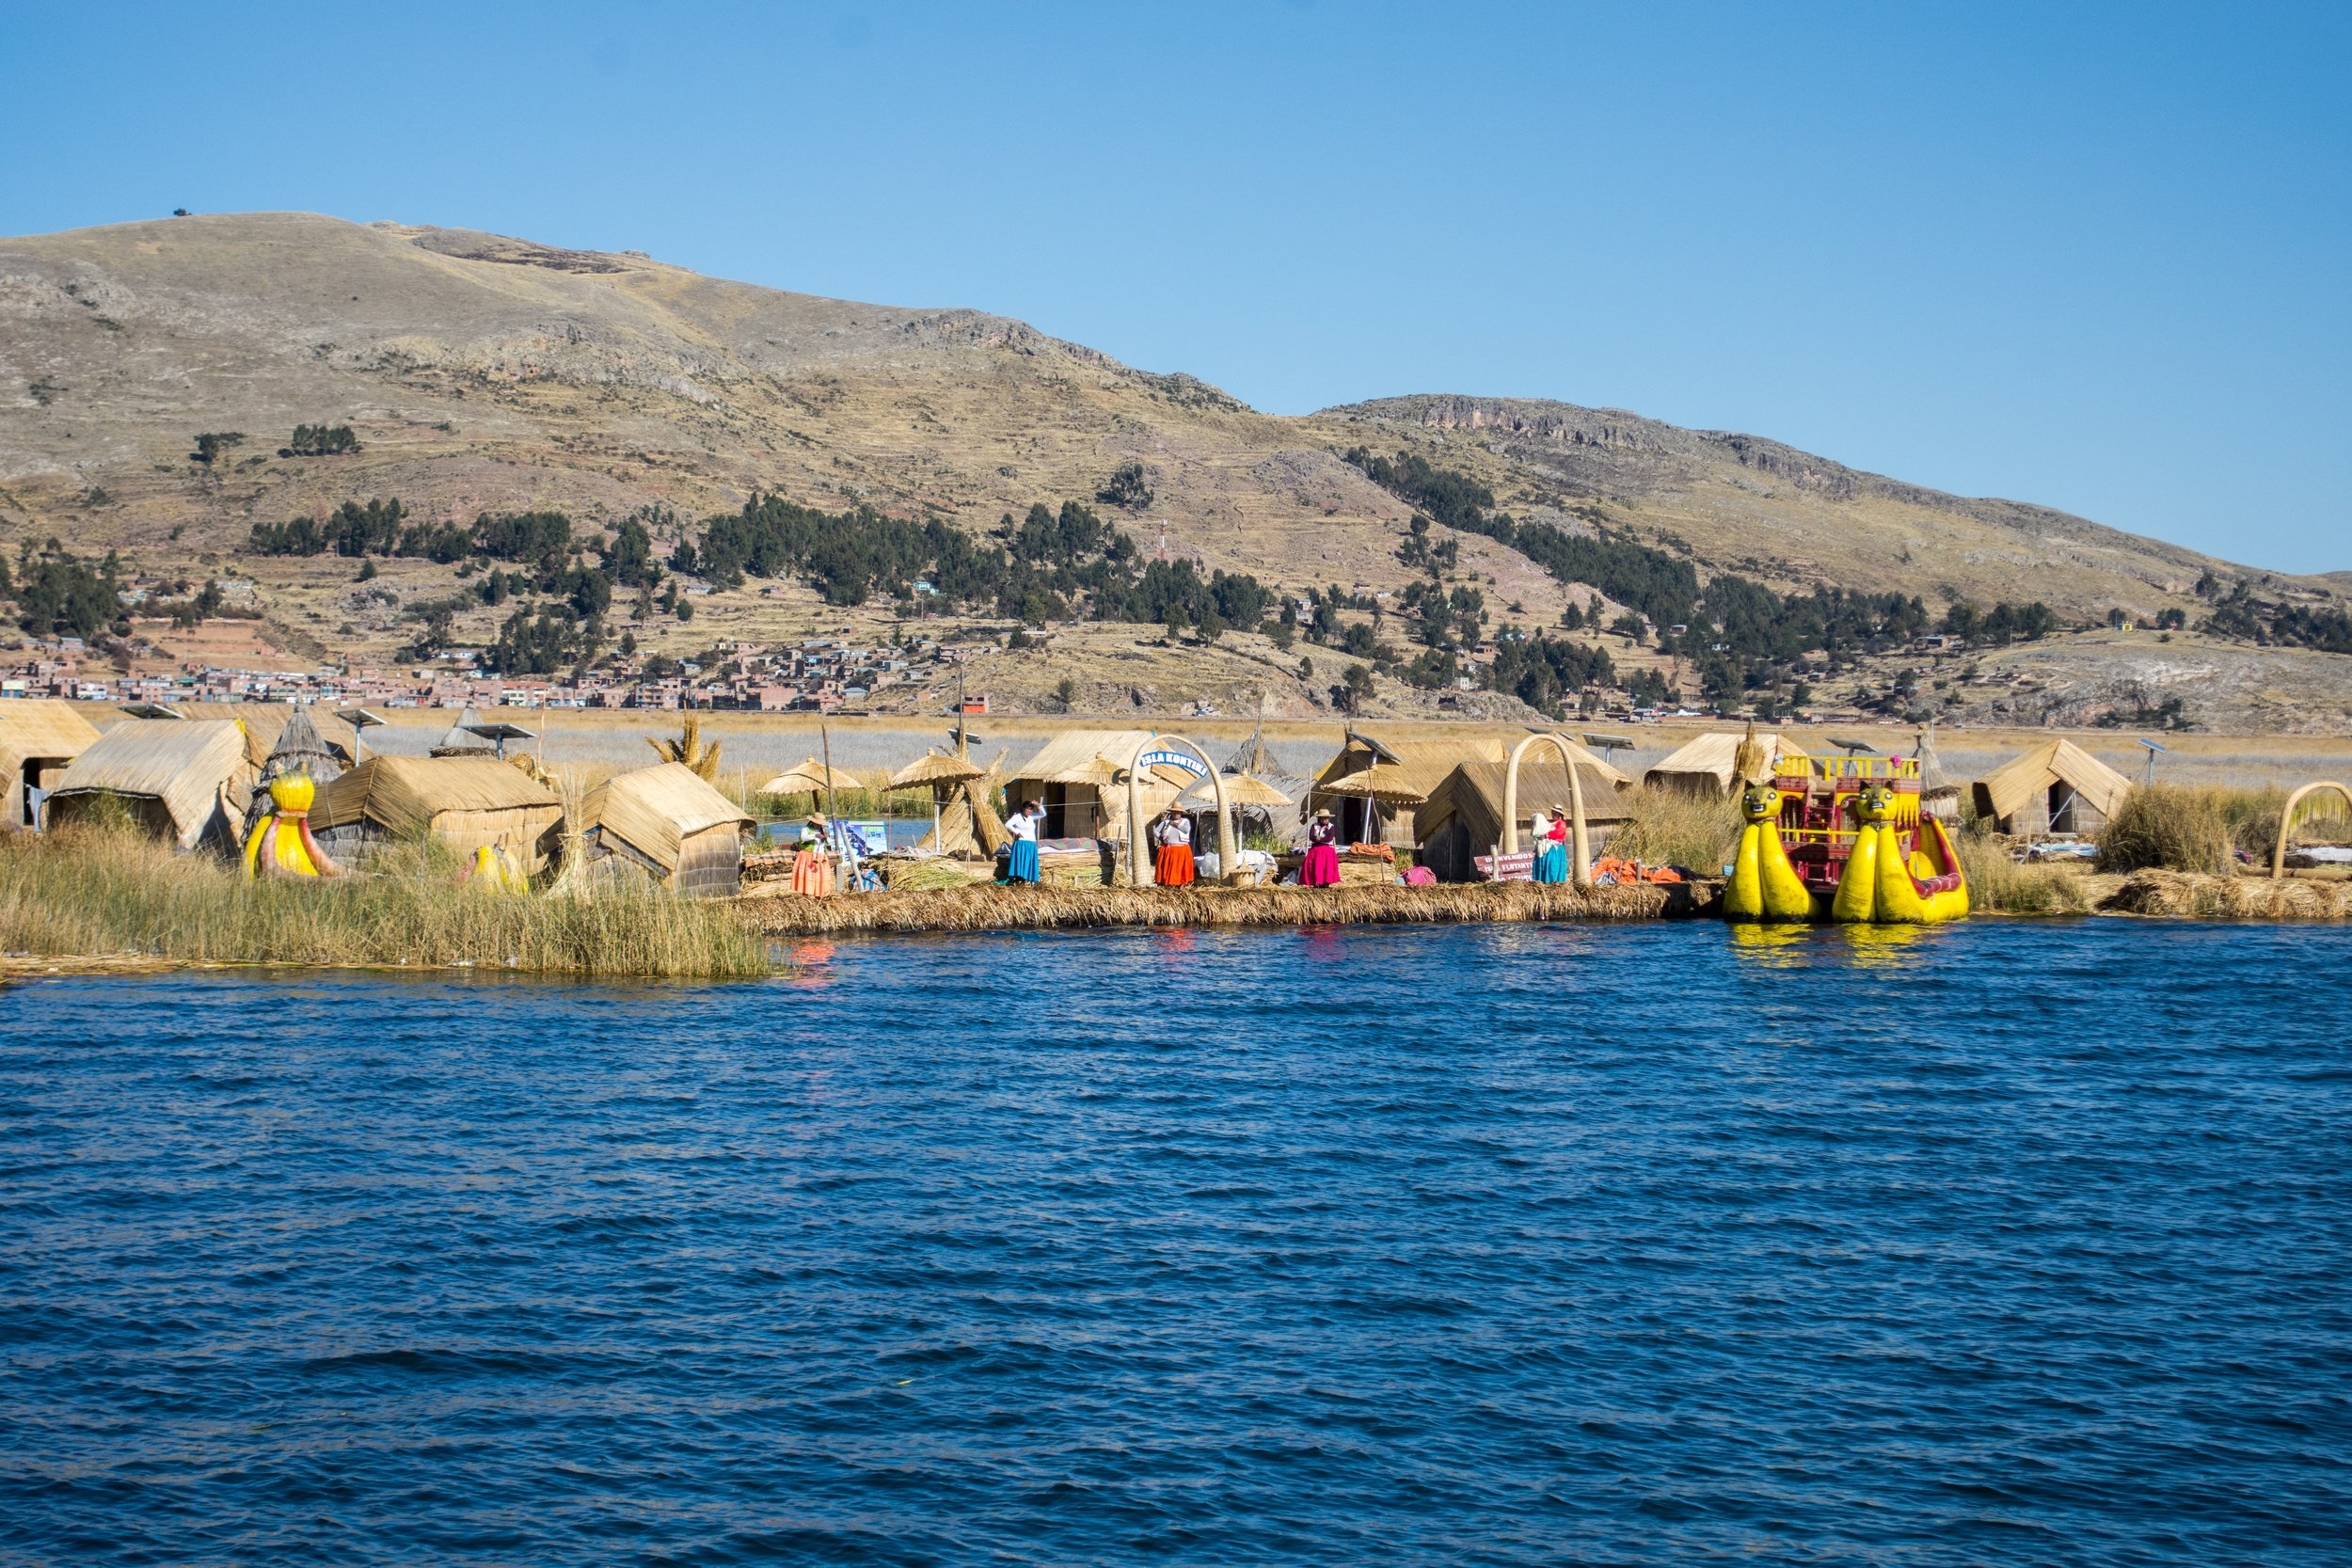 Uros Floating Islands in Lake Titicaca